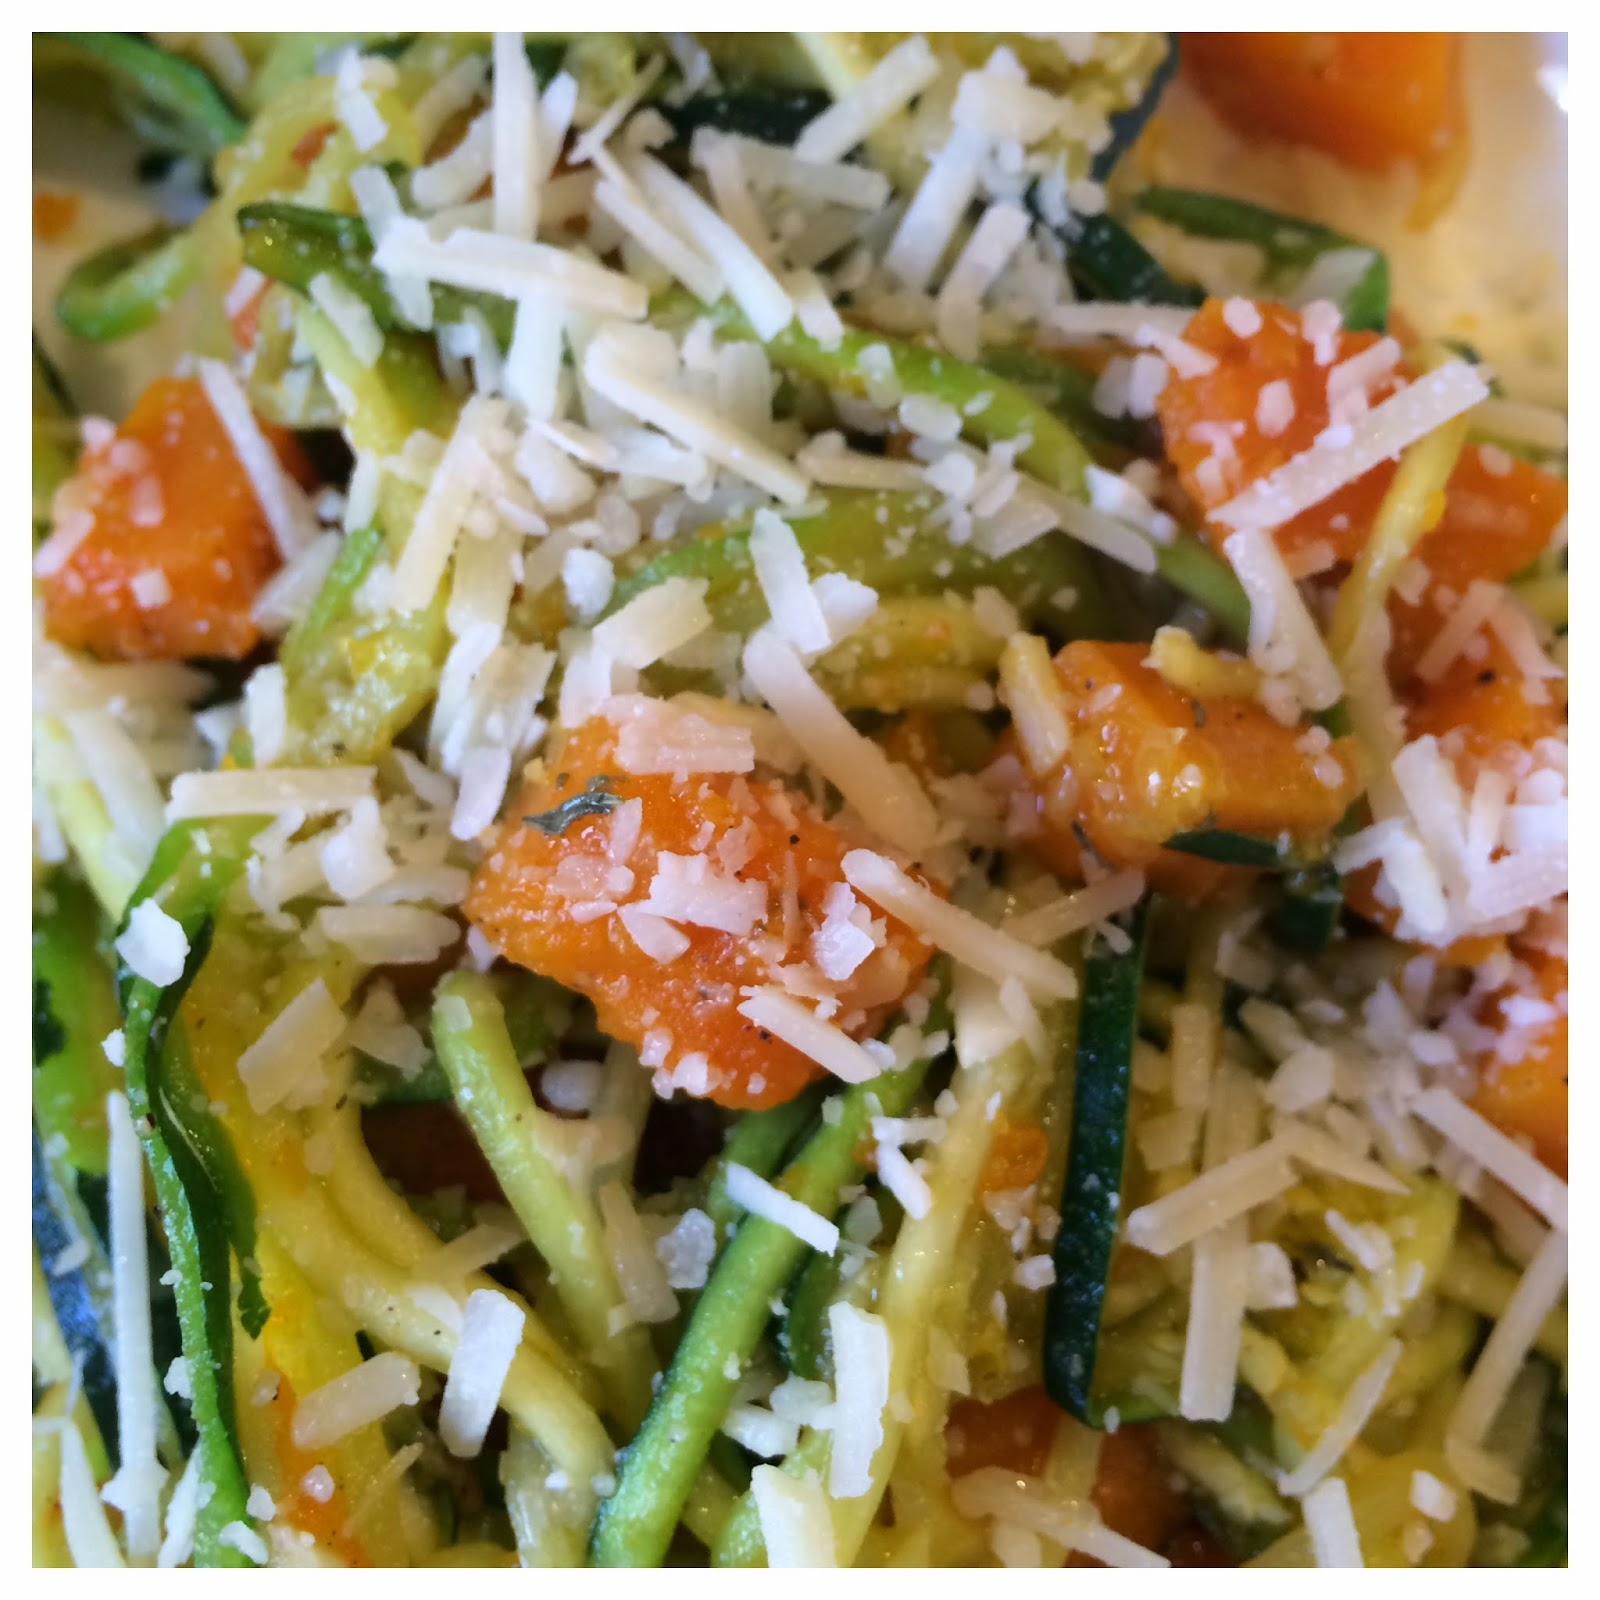 ... Recipe: Perfect for Spring - Zucchini Pasta with Butternut Squash